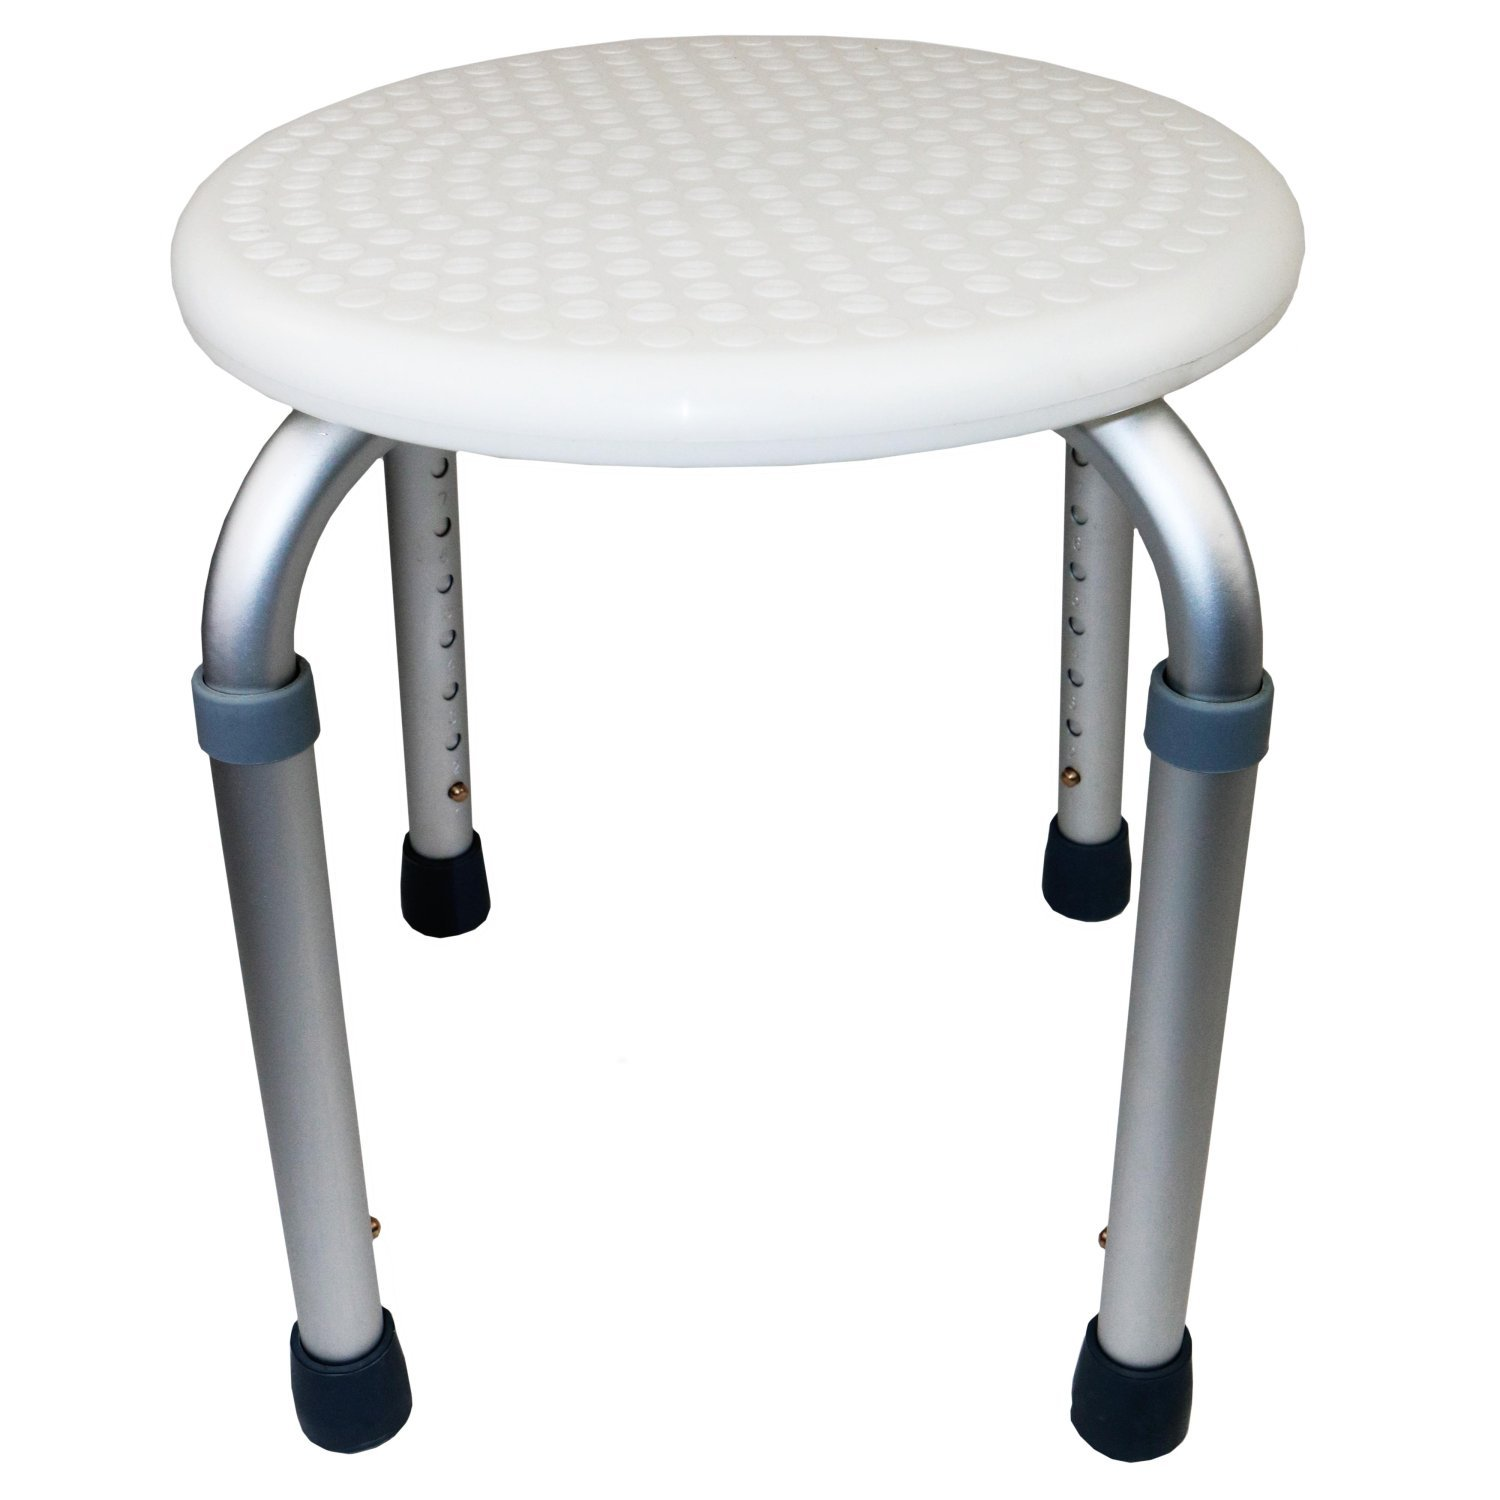 Height Adjustable Round Shower Stool Seat Disability Aid